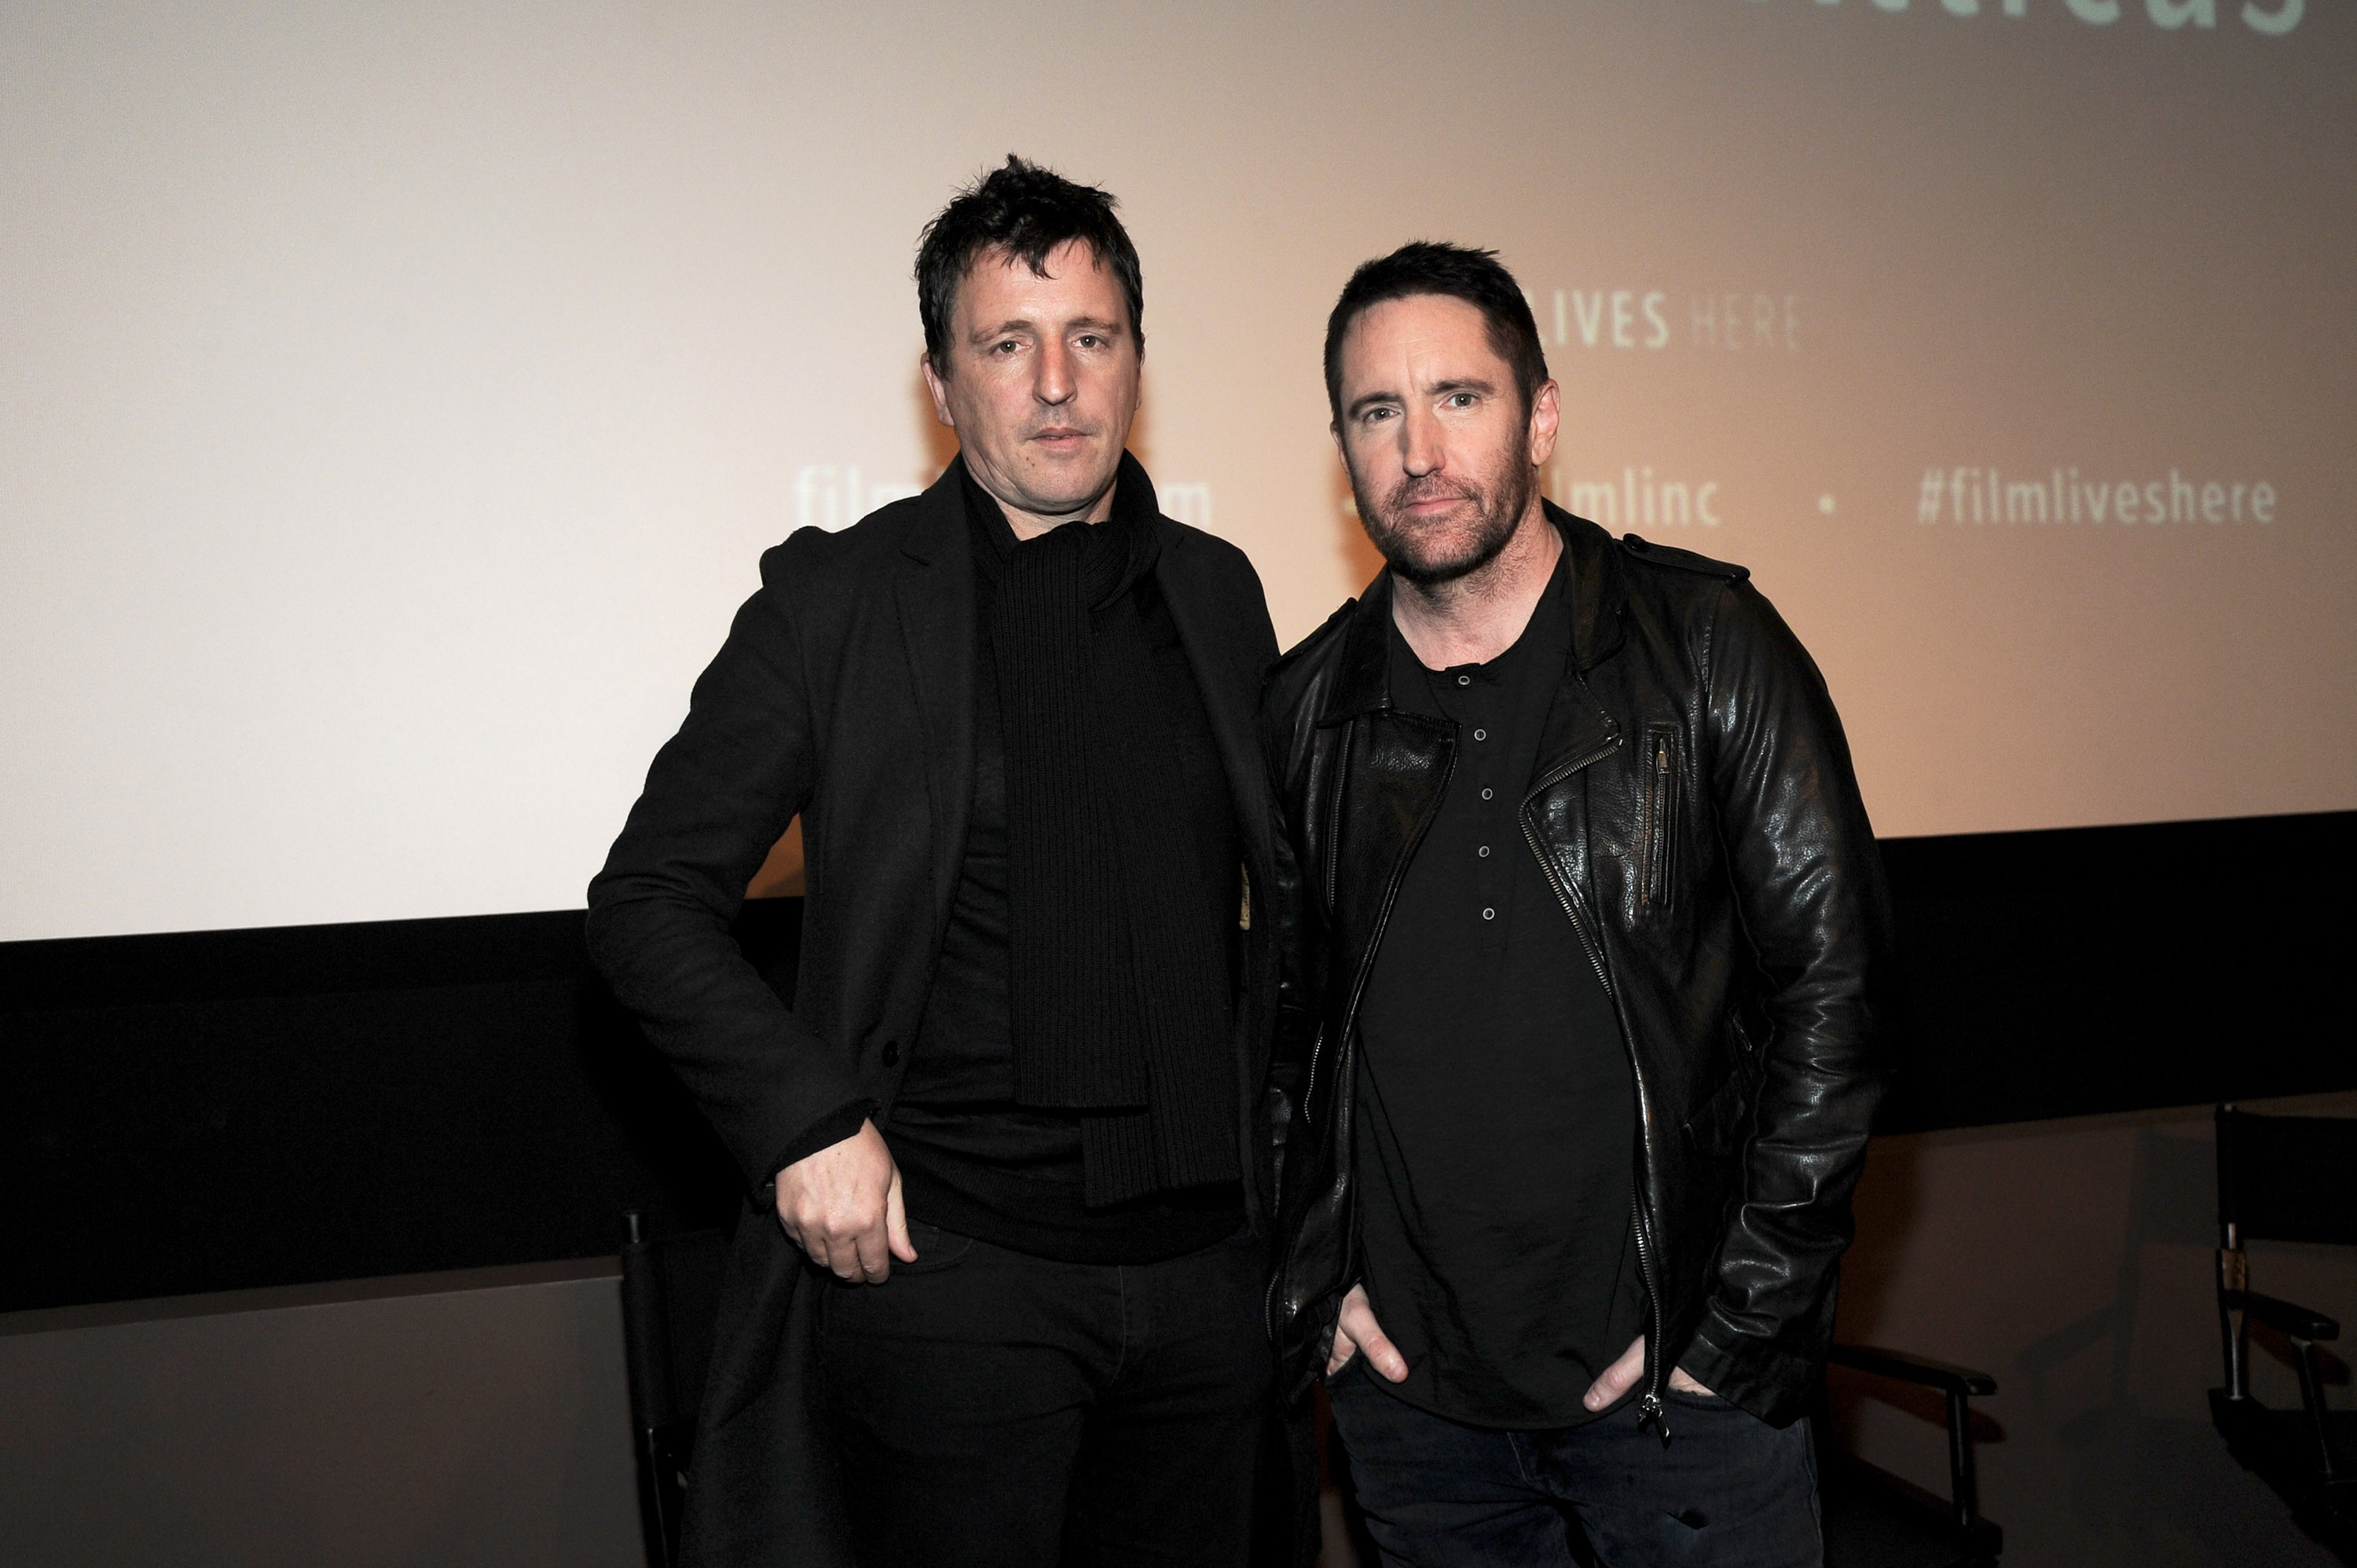 trent-reznor-and-atticus-ross-to-score-david-fincher-mank